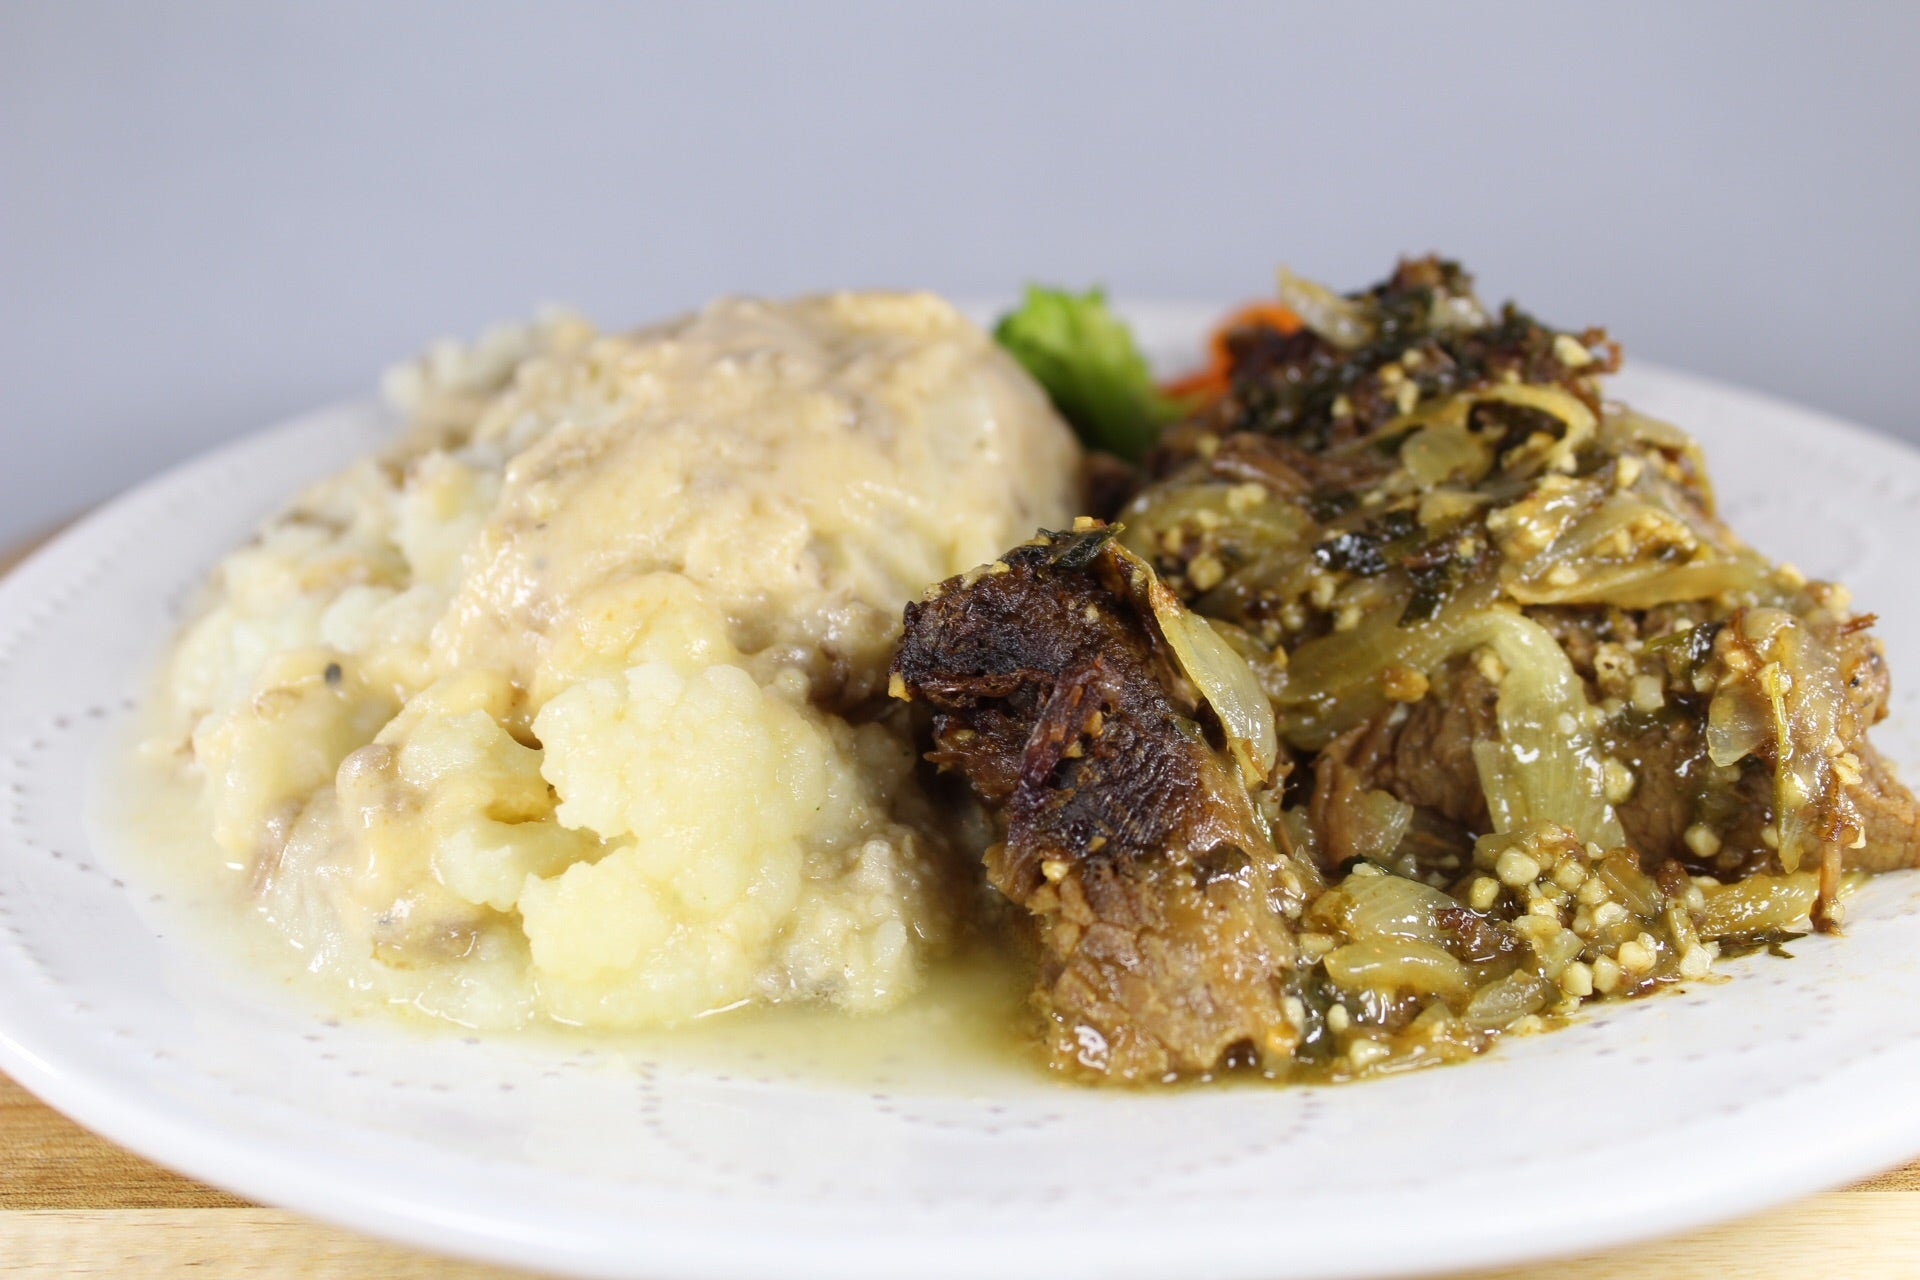 Papa Majada con Gravy y Roast Beef Encebollado / Mashed Potatoes with Gravy and Sautéed Roast Beef